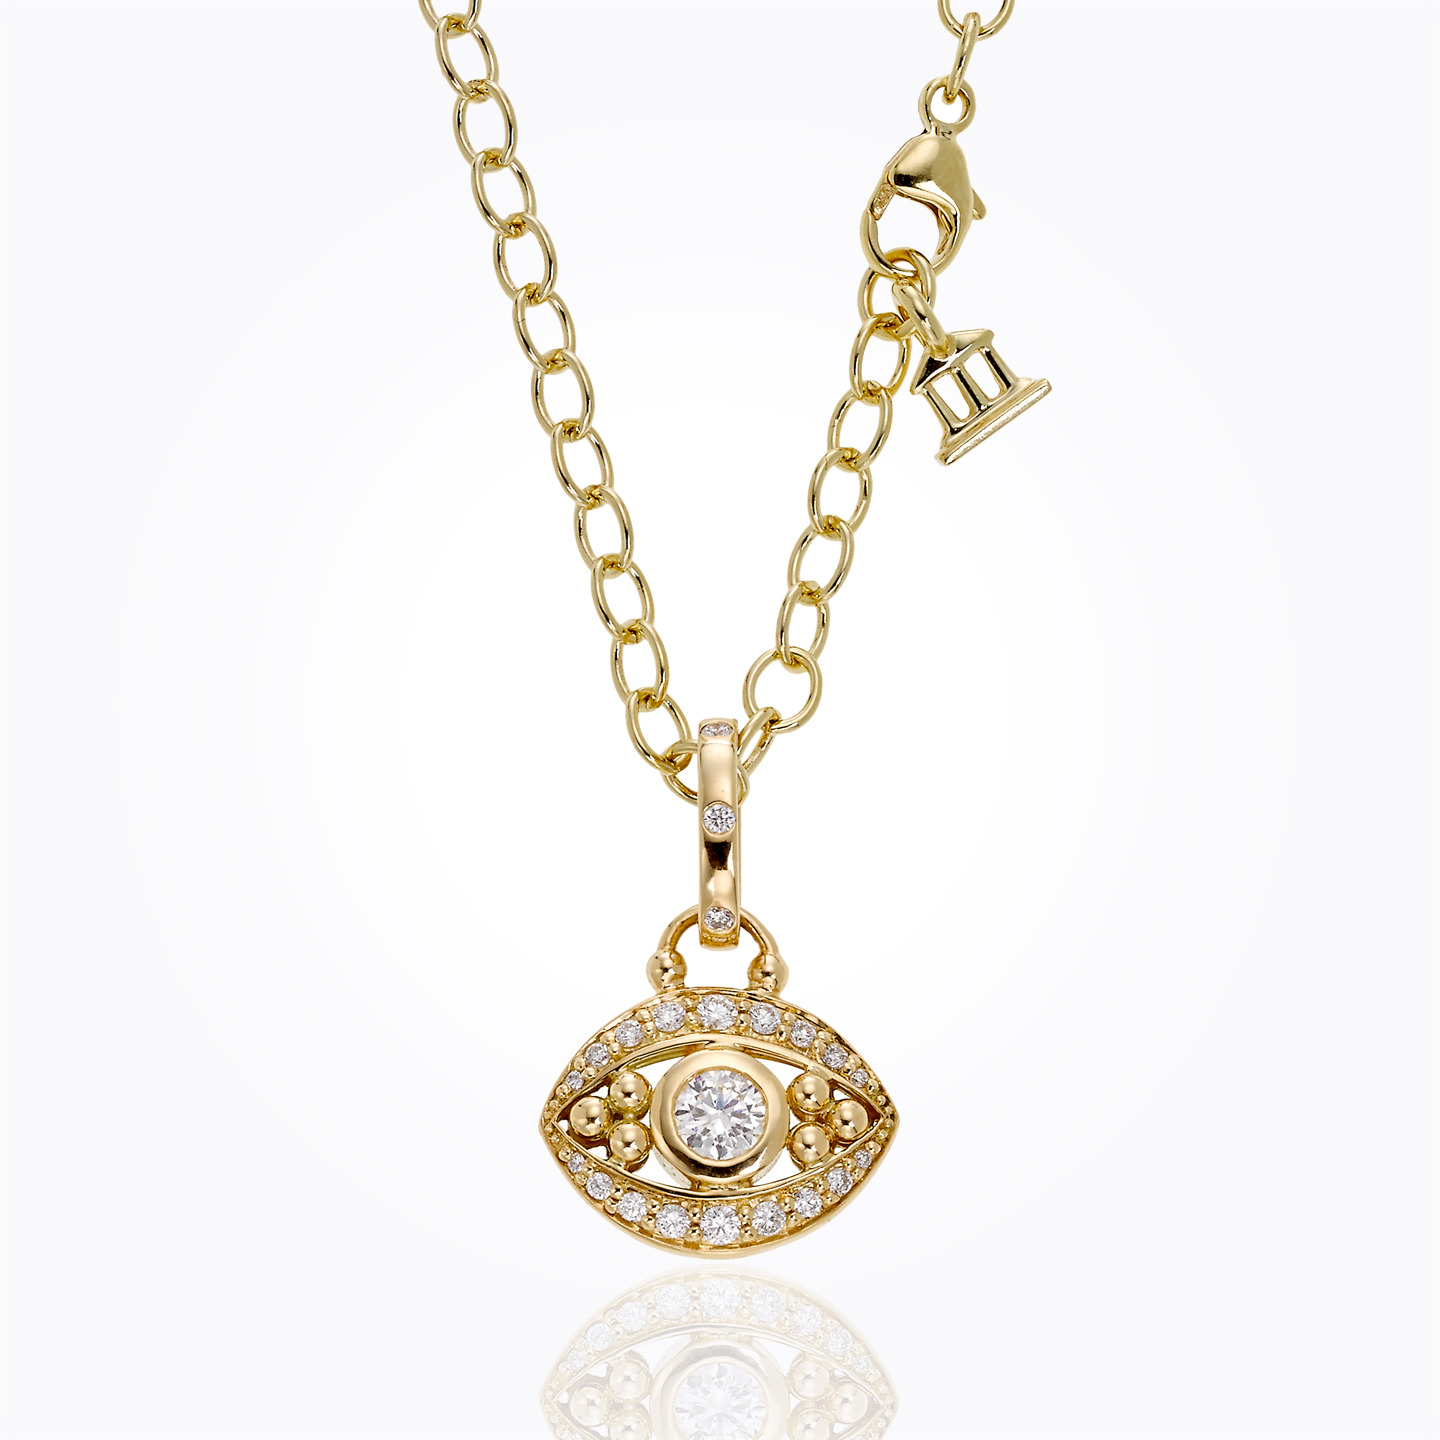 18K Evil Eye Pendant in diamond - P31848-PVEYE - alternate